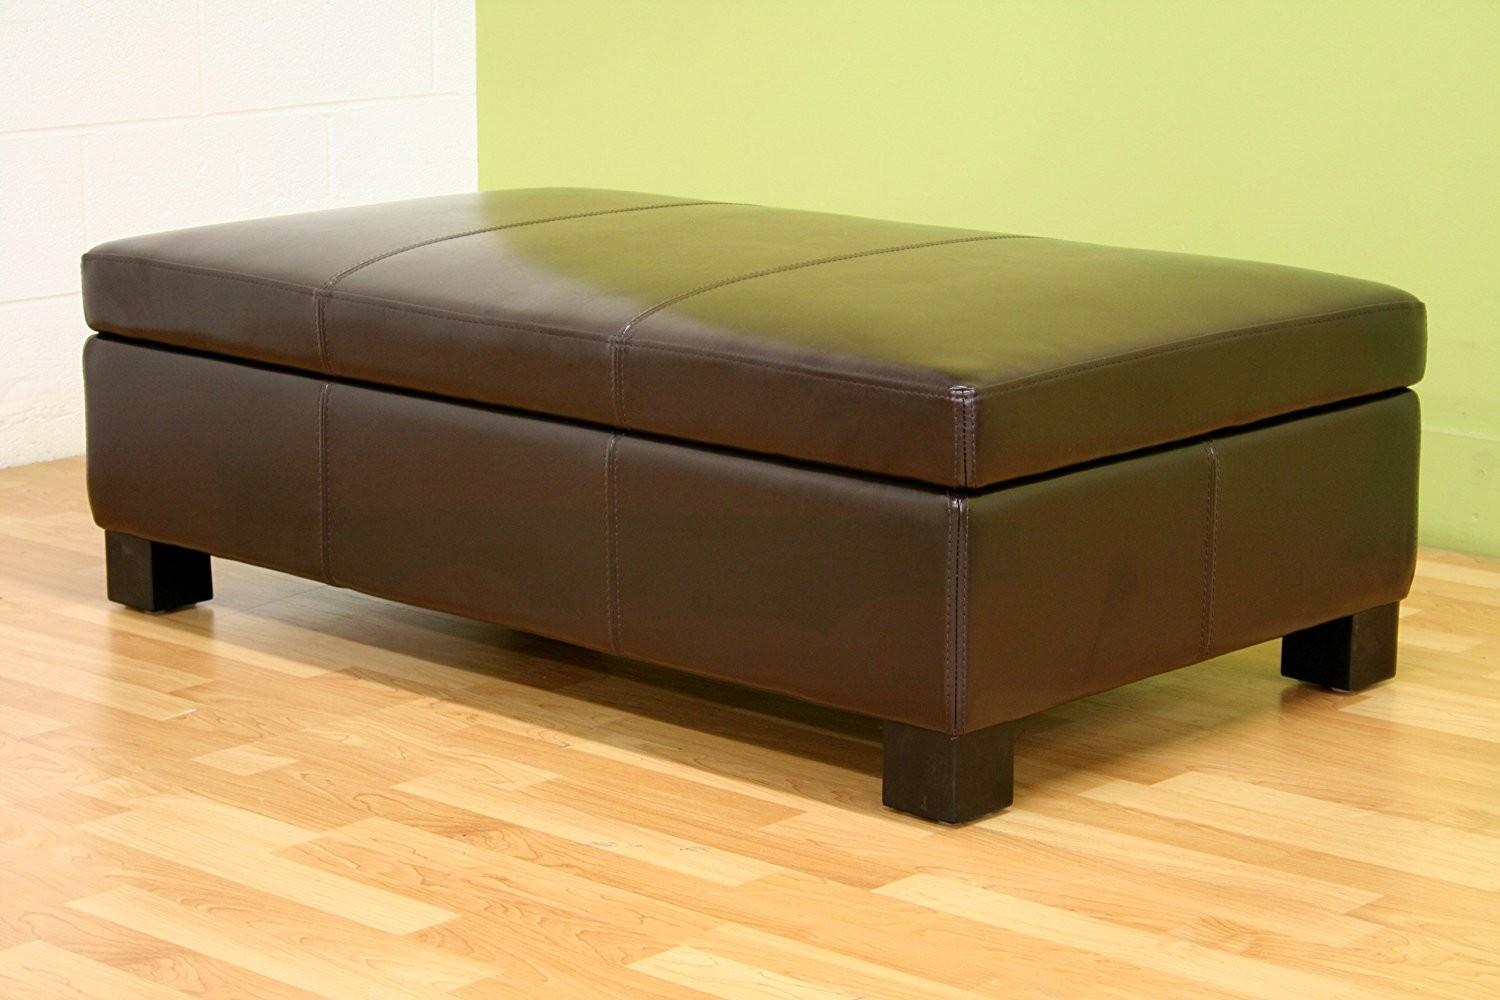 Living Room Round Tufted Leather Ottoman Coffee Table